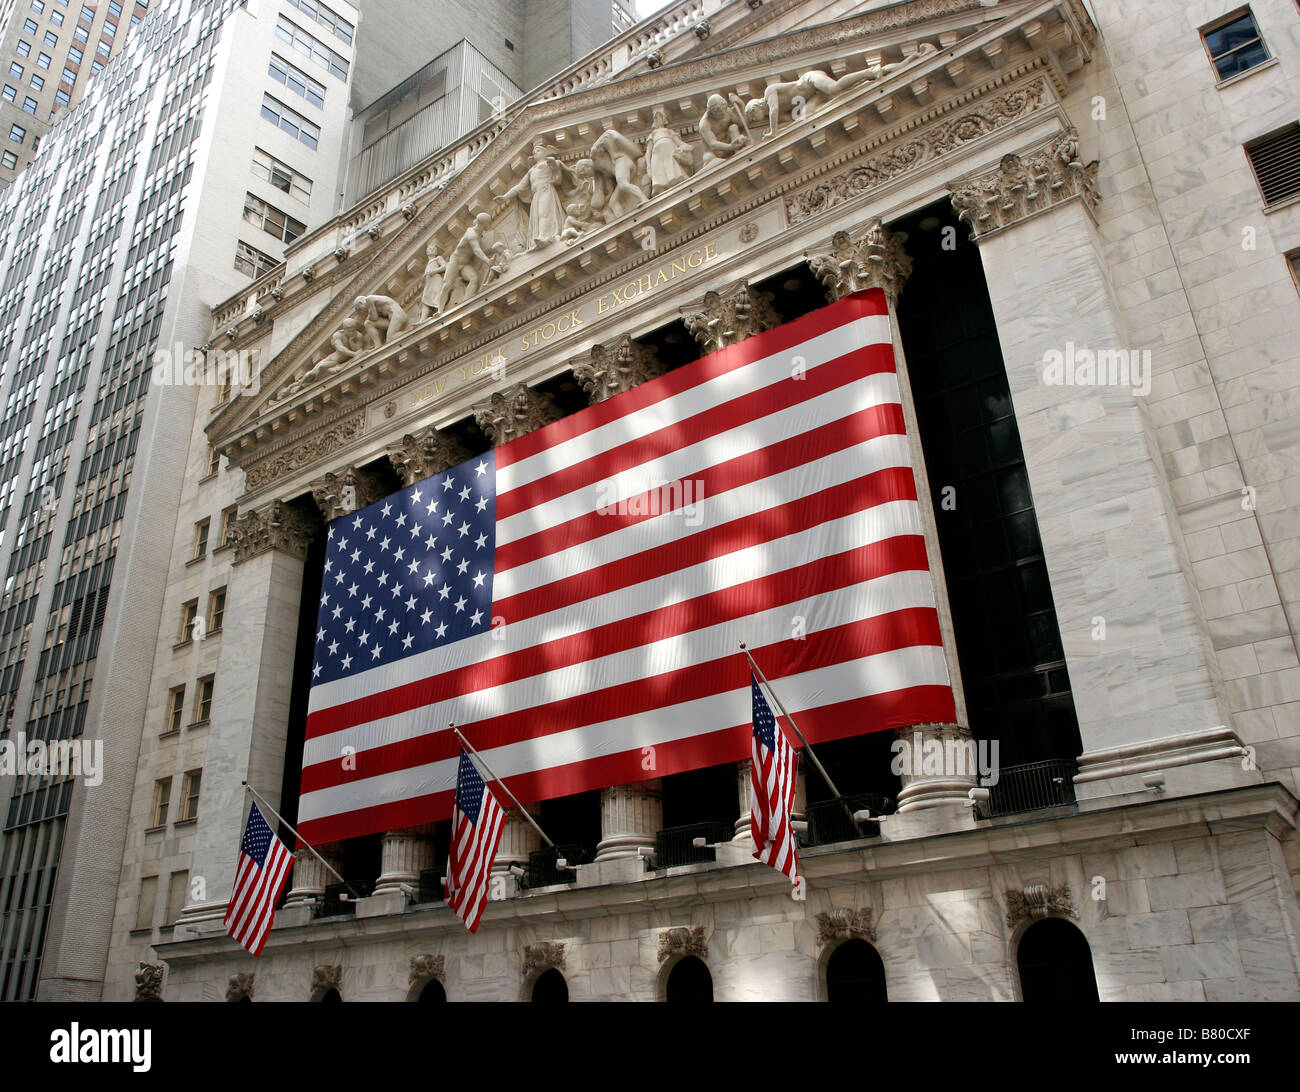 Entrance to the New York stock exchange - Stock Image